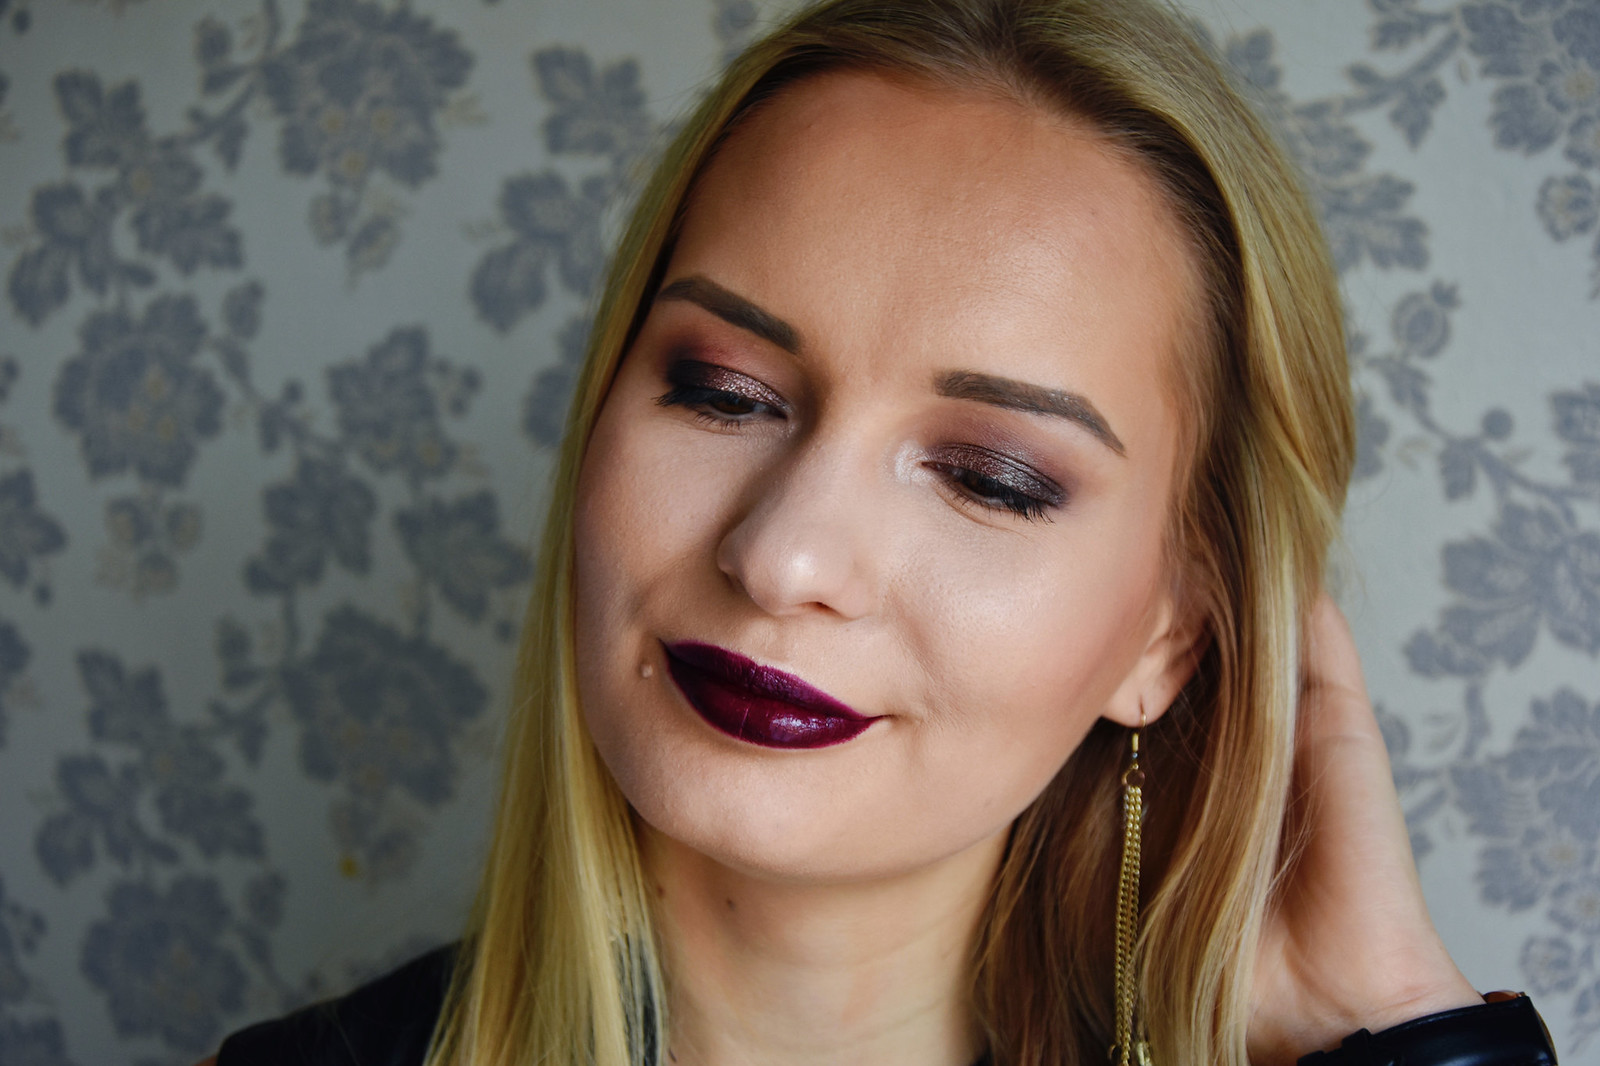 Dark lips makeup look